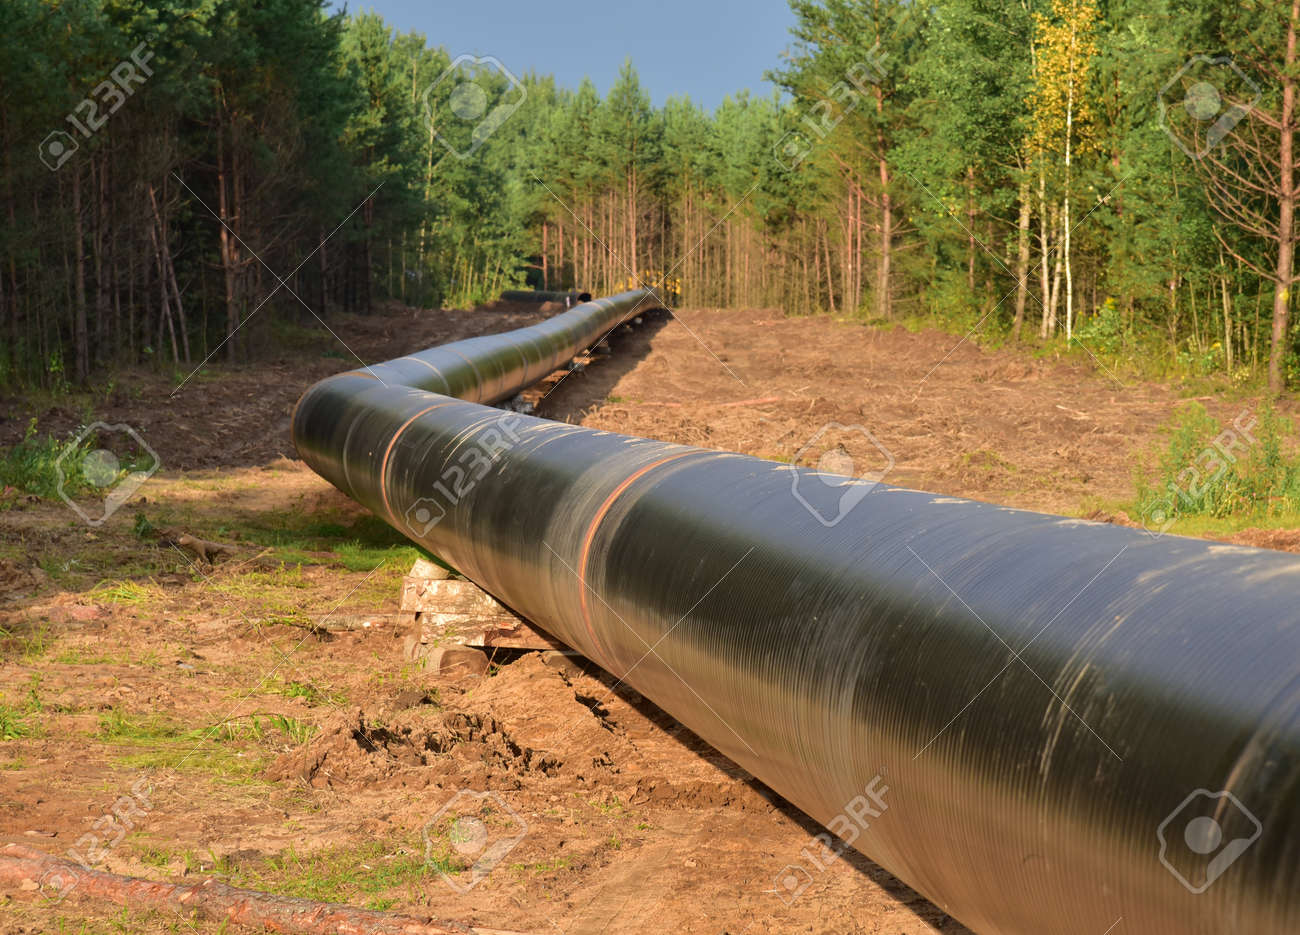 Natural gas pipeline construction work in forest area. Installation of gas and crude oil pipes. Construction of gas pipes to new LNG plant. - 157561953